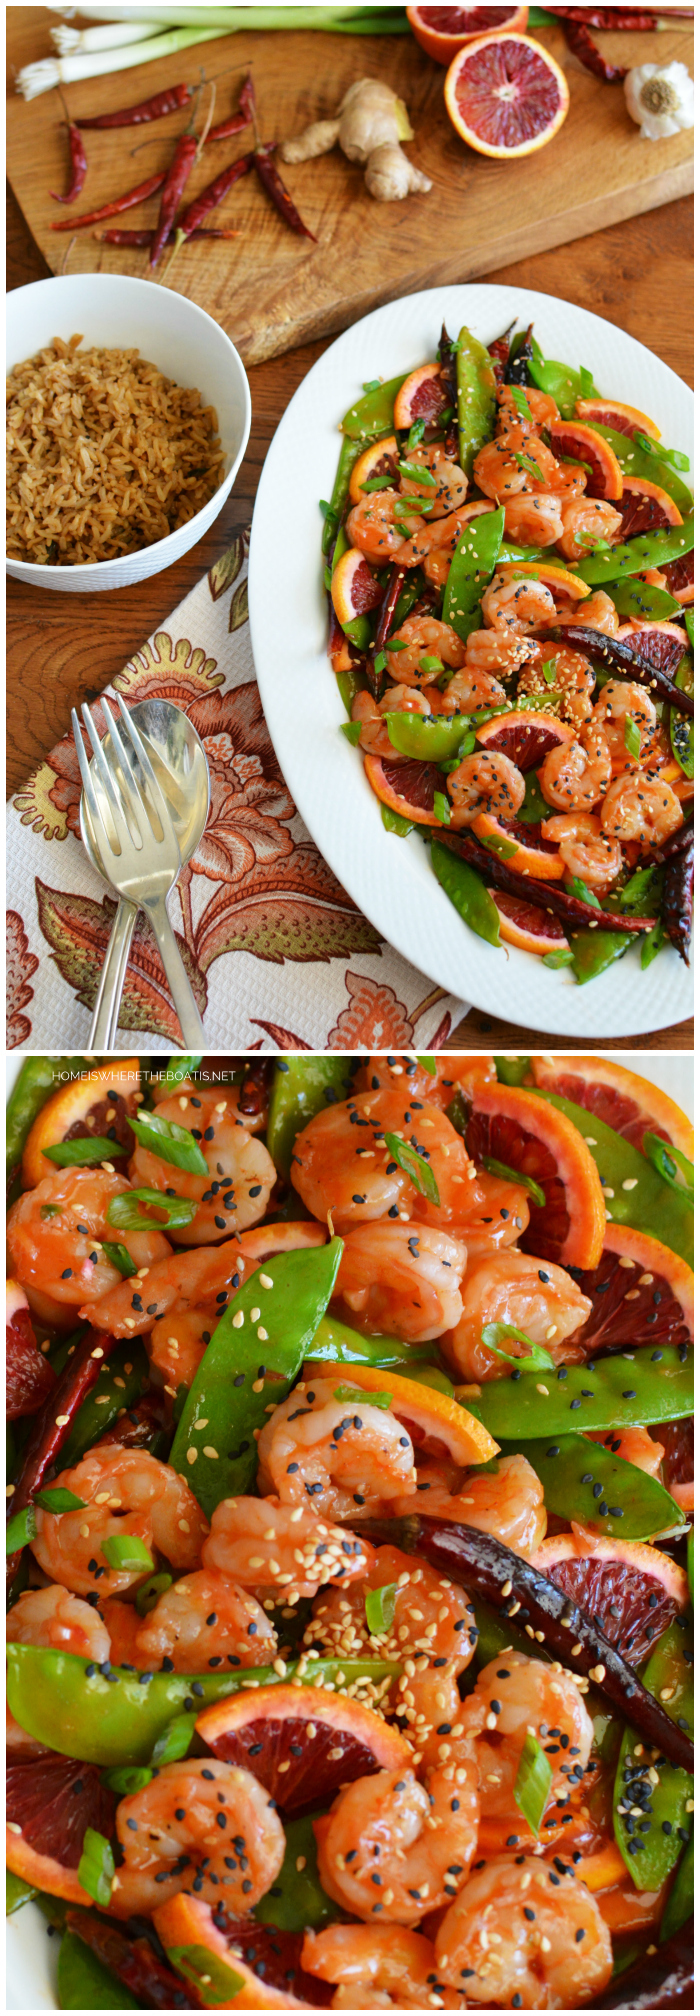 Blood Orange-Shrimp Stir-Fry for Chinese New Year | ©homeiswheretheboatis.net #recipes #newyear #healthy